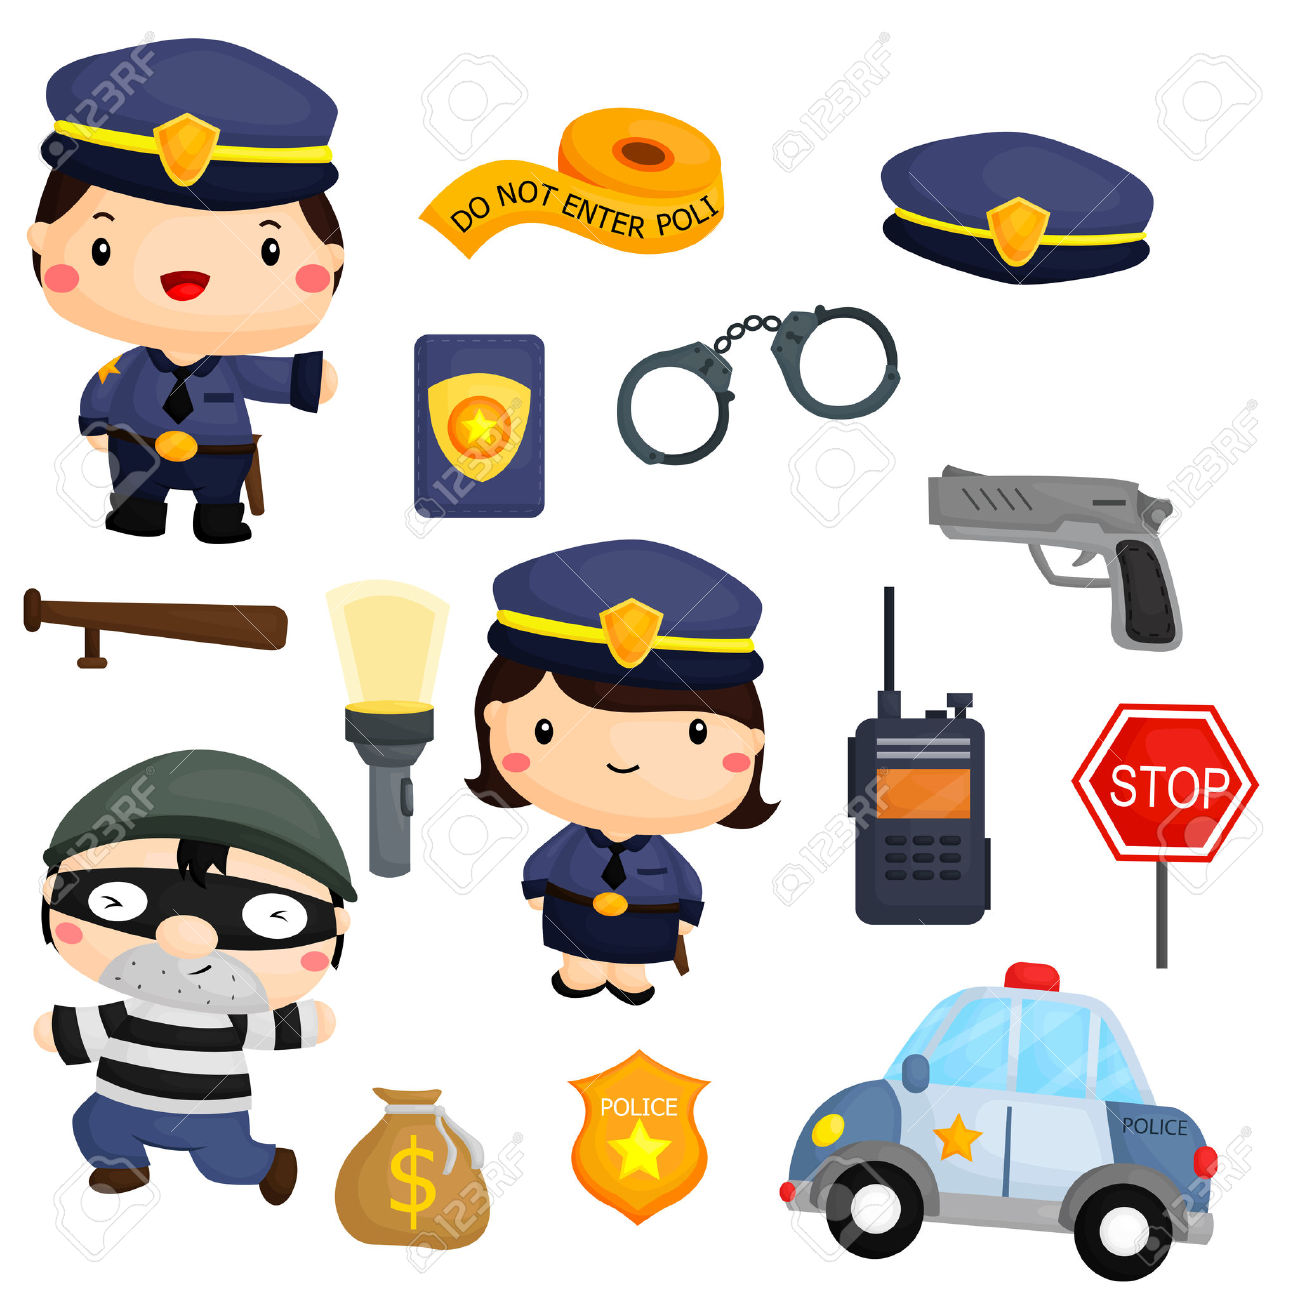 Robber in cop car clipart jpg transparent library Police And Robber Vector Set Royalty Free Cliparts, Vectors, And ... jpg transparent library